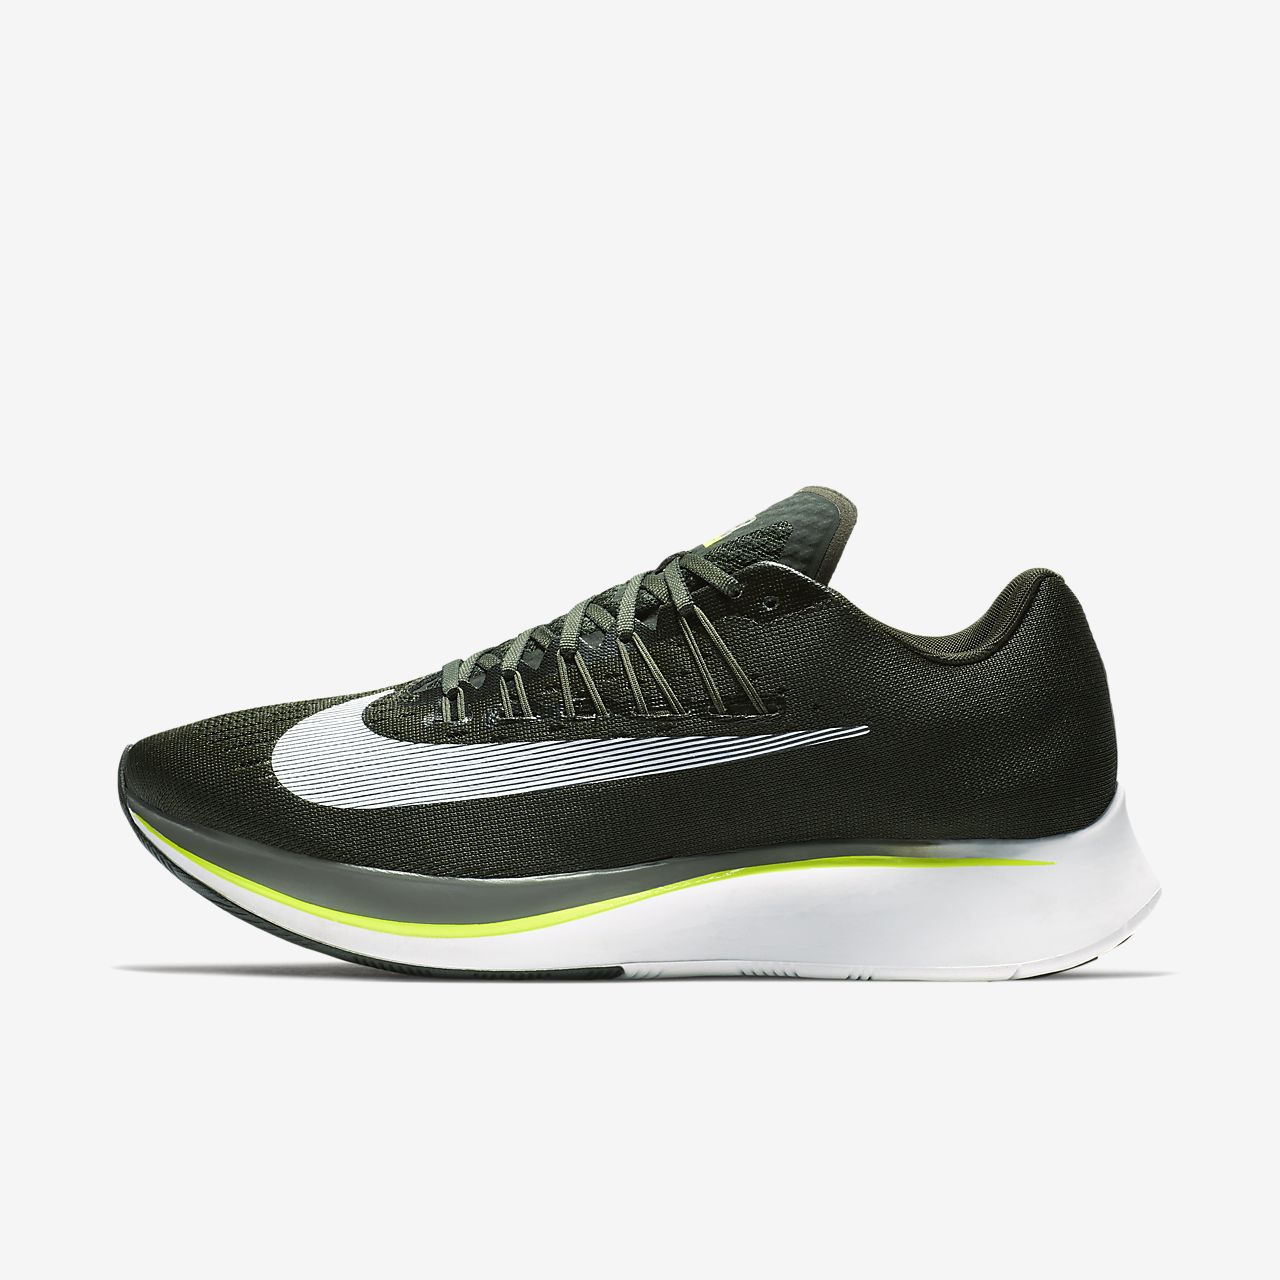 Nike Performance ZOOM FLY - Chaussures de running compétition - black/anthracite kCFkrpB